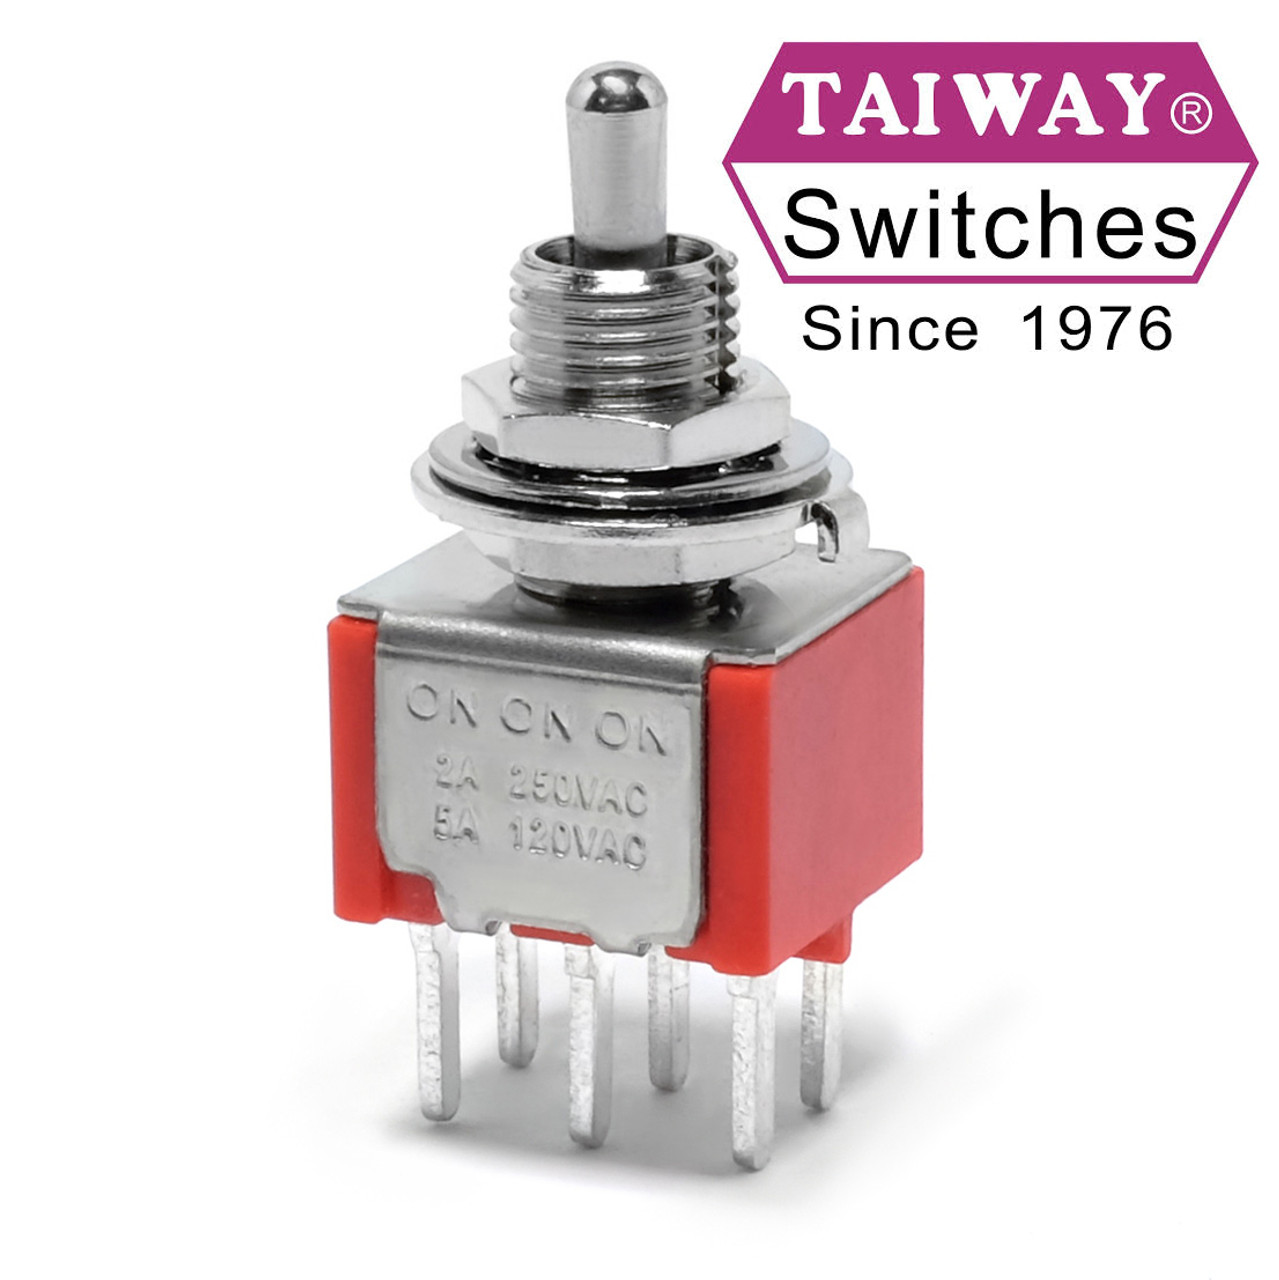 Dpdt Toggle Switch Wiring Diagram Further Toggle Switch Wiring Diagram